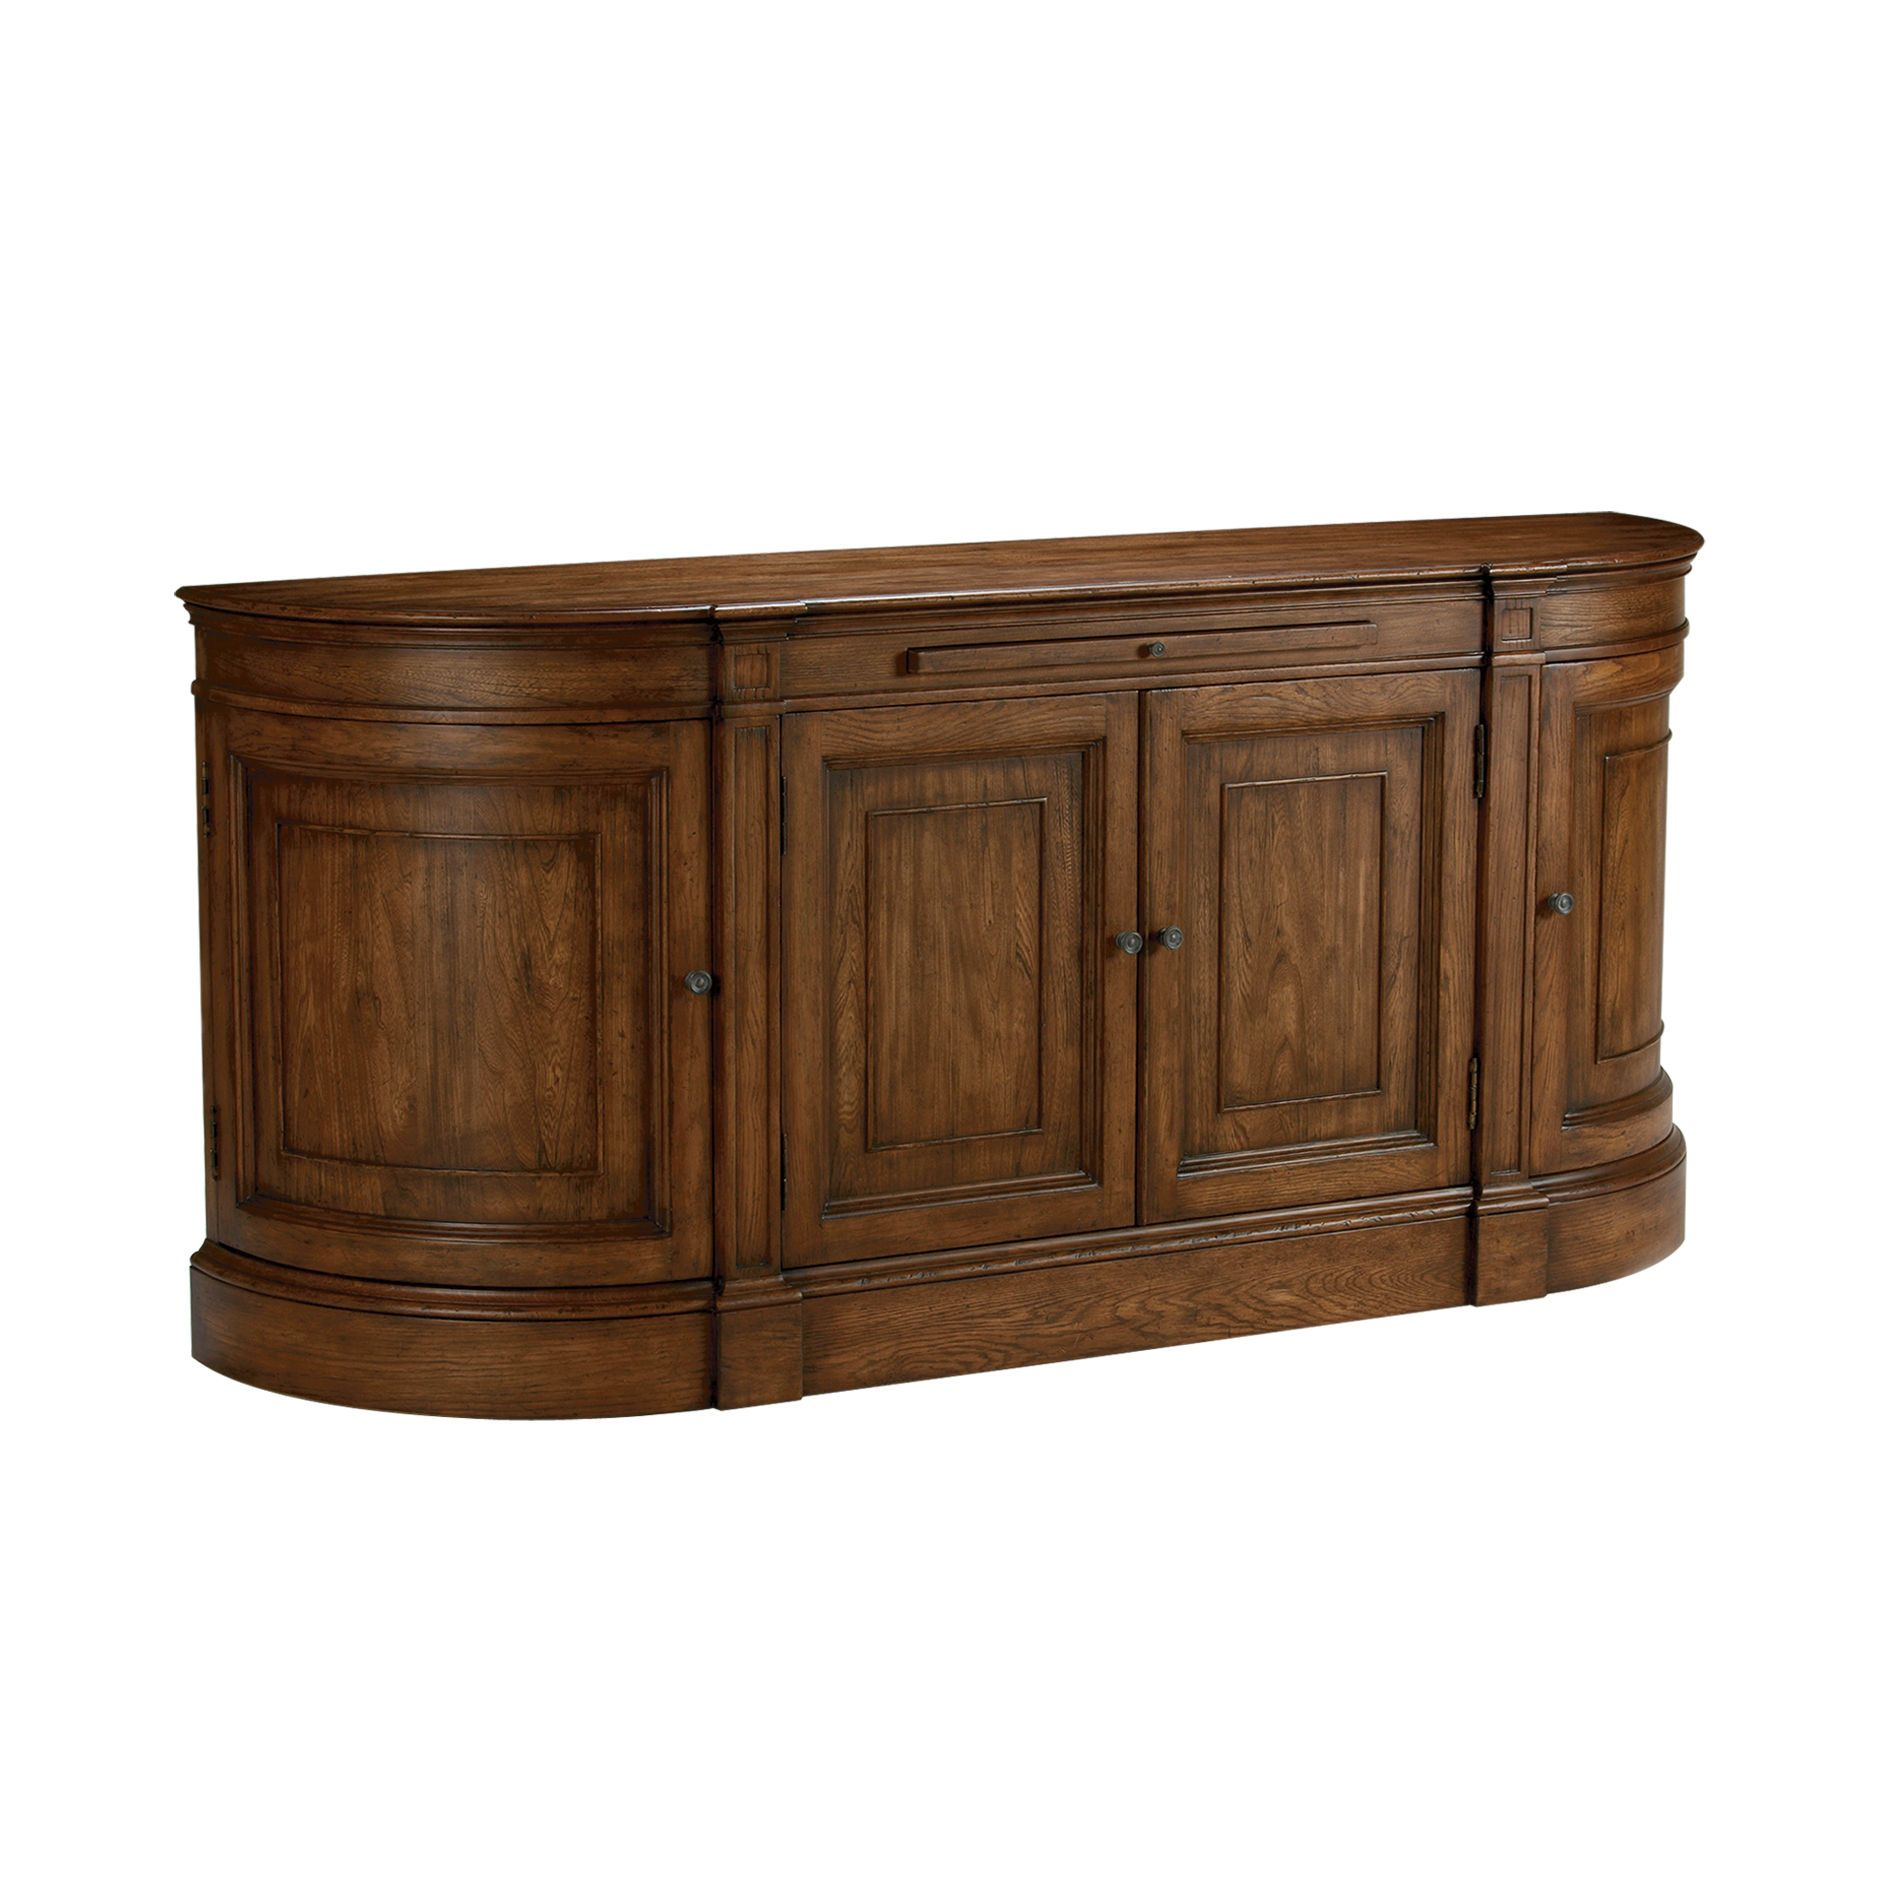 Ethan Allen Buffet To Use Under The Wall Mounted Tv Put Media Equipment In